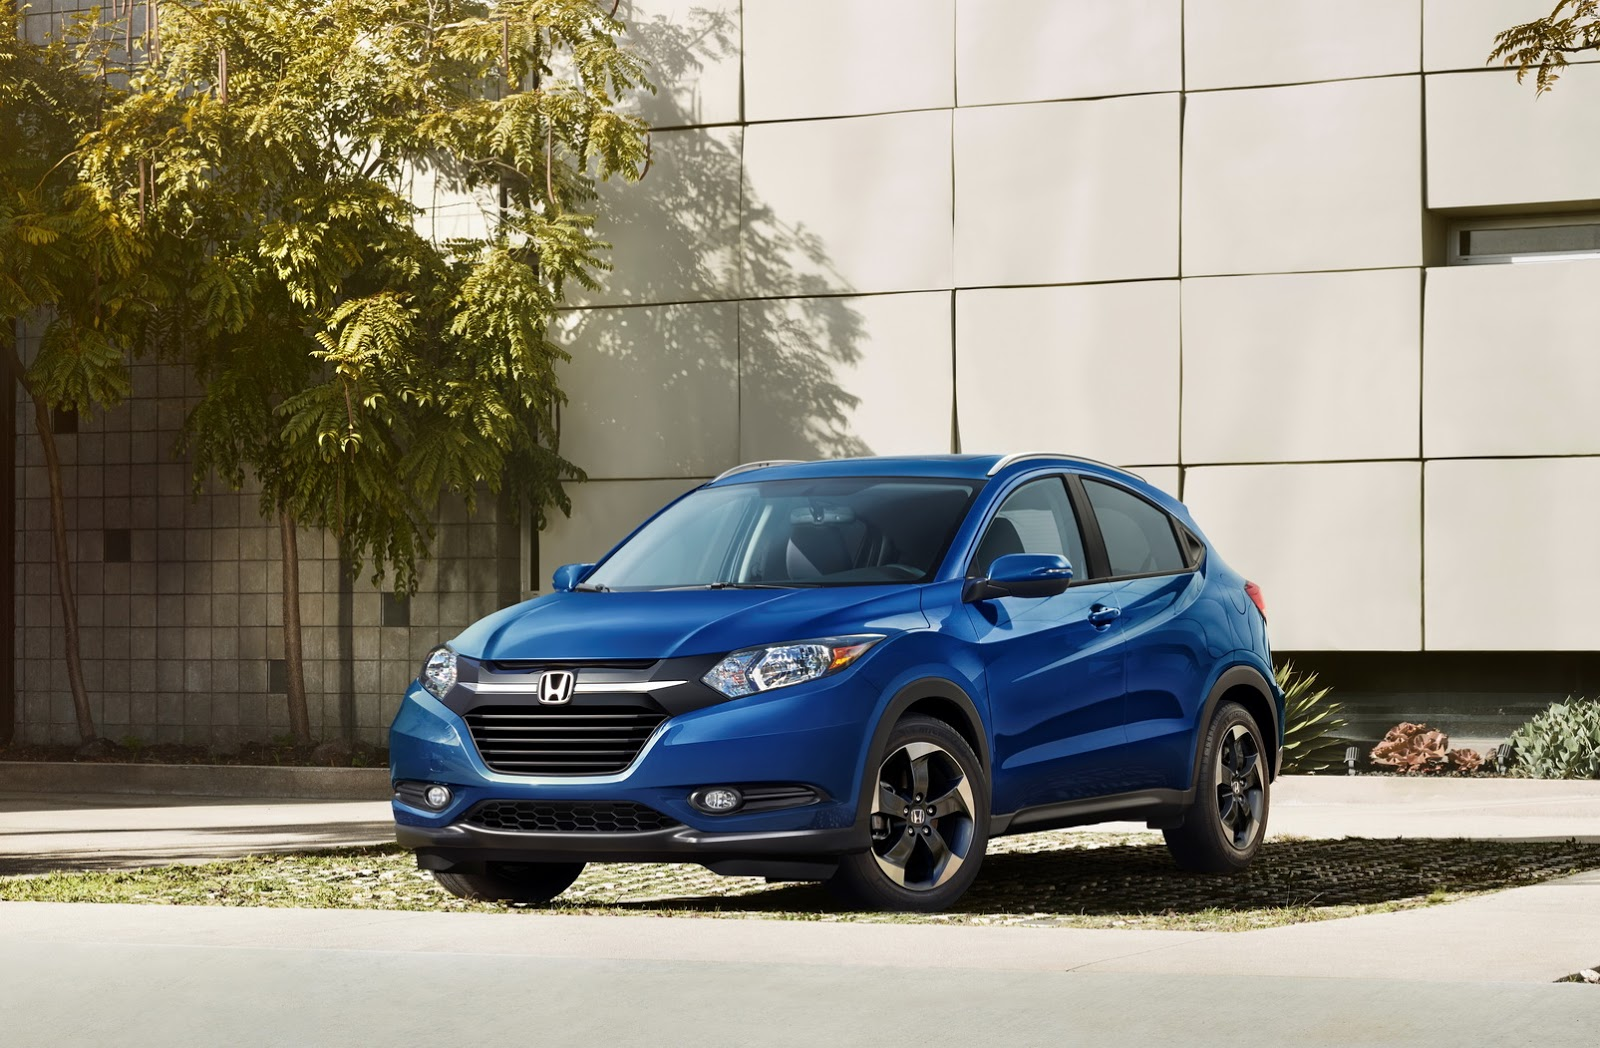 2018 Honda HR V Gets Small Price Bump New Exterior Color And Wheel